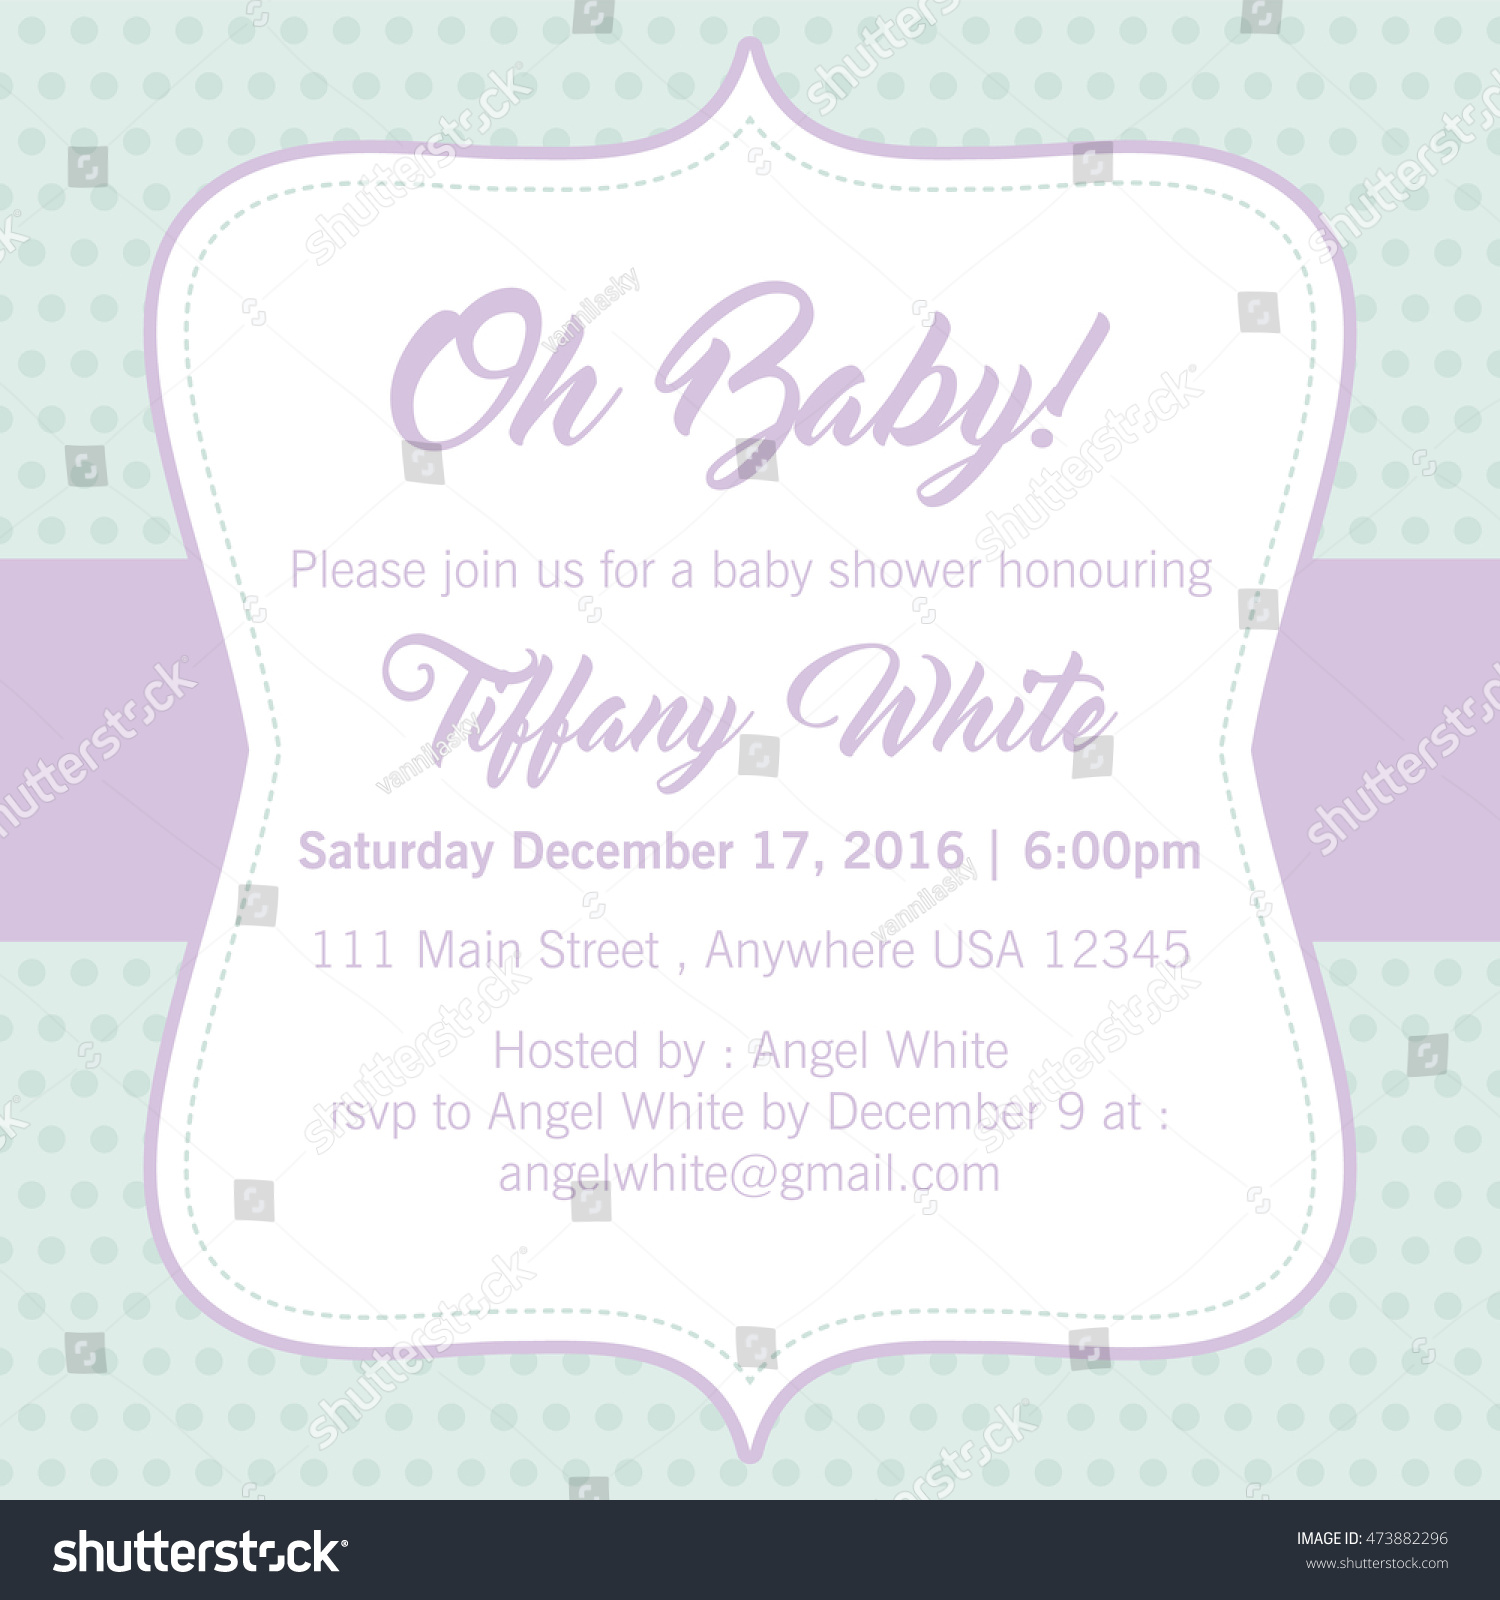 Baby Shower Invitation Soft Color Background Stock Vector ...